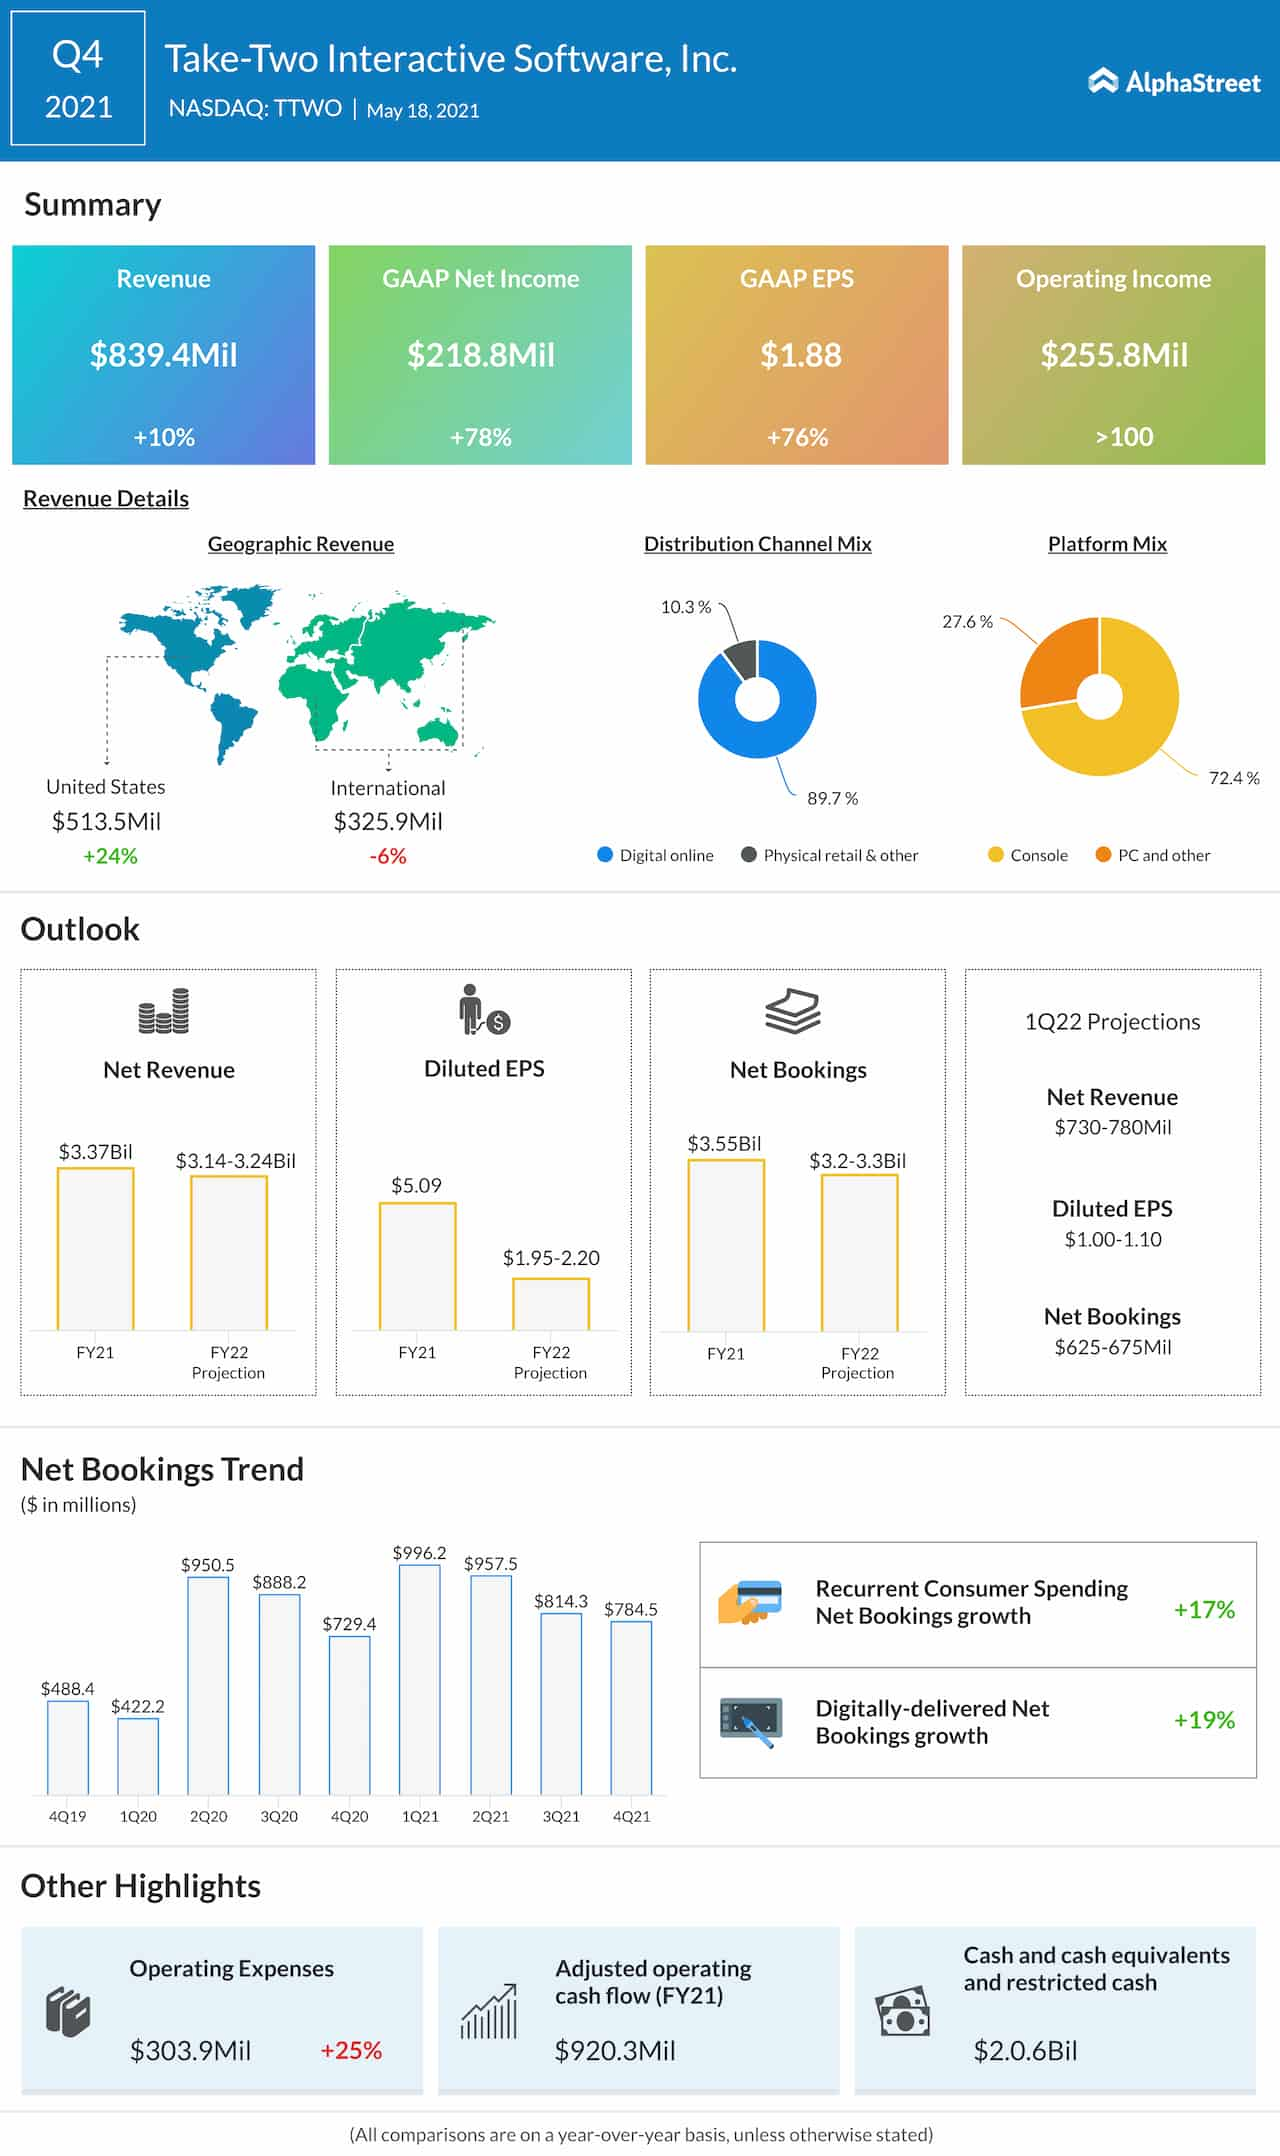 Take-Two Interactive Software Q4 2021 earnings infographic